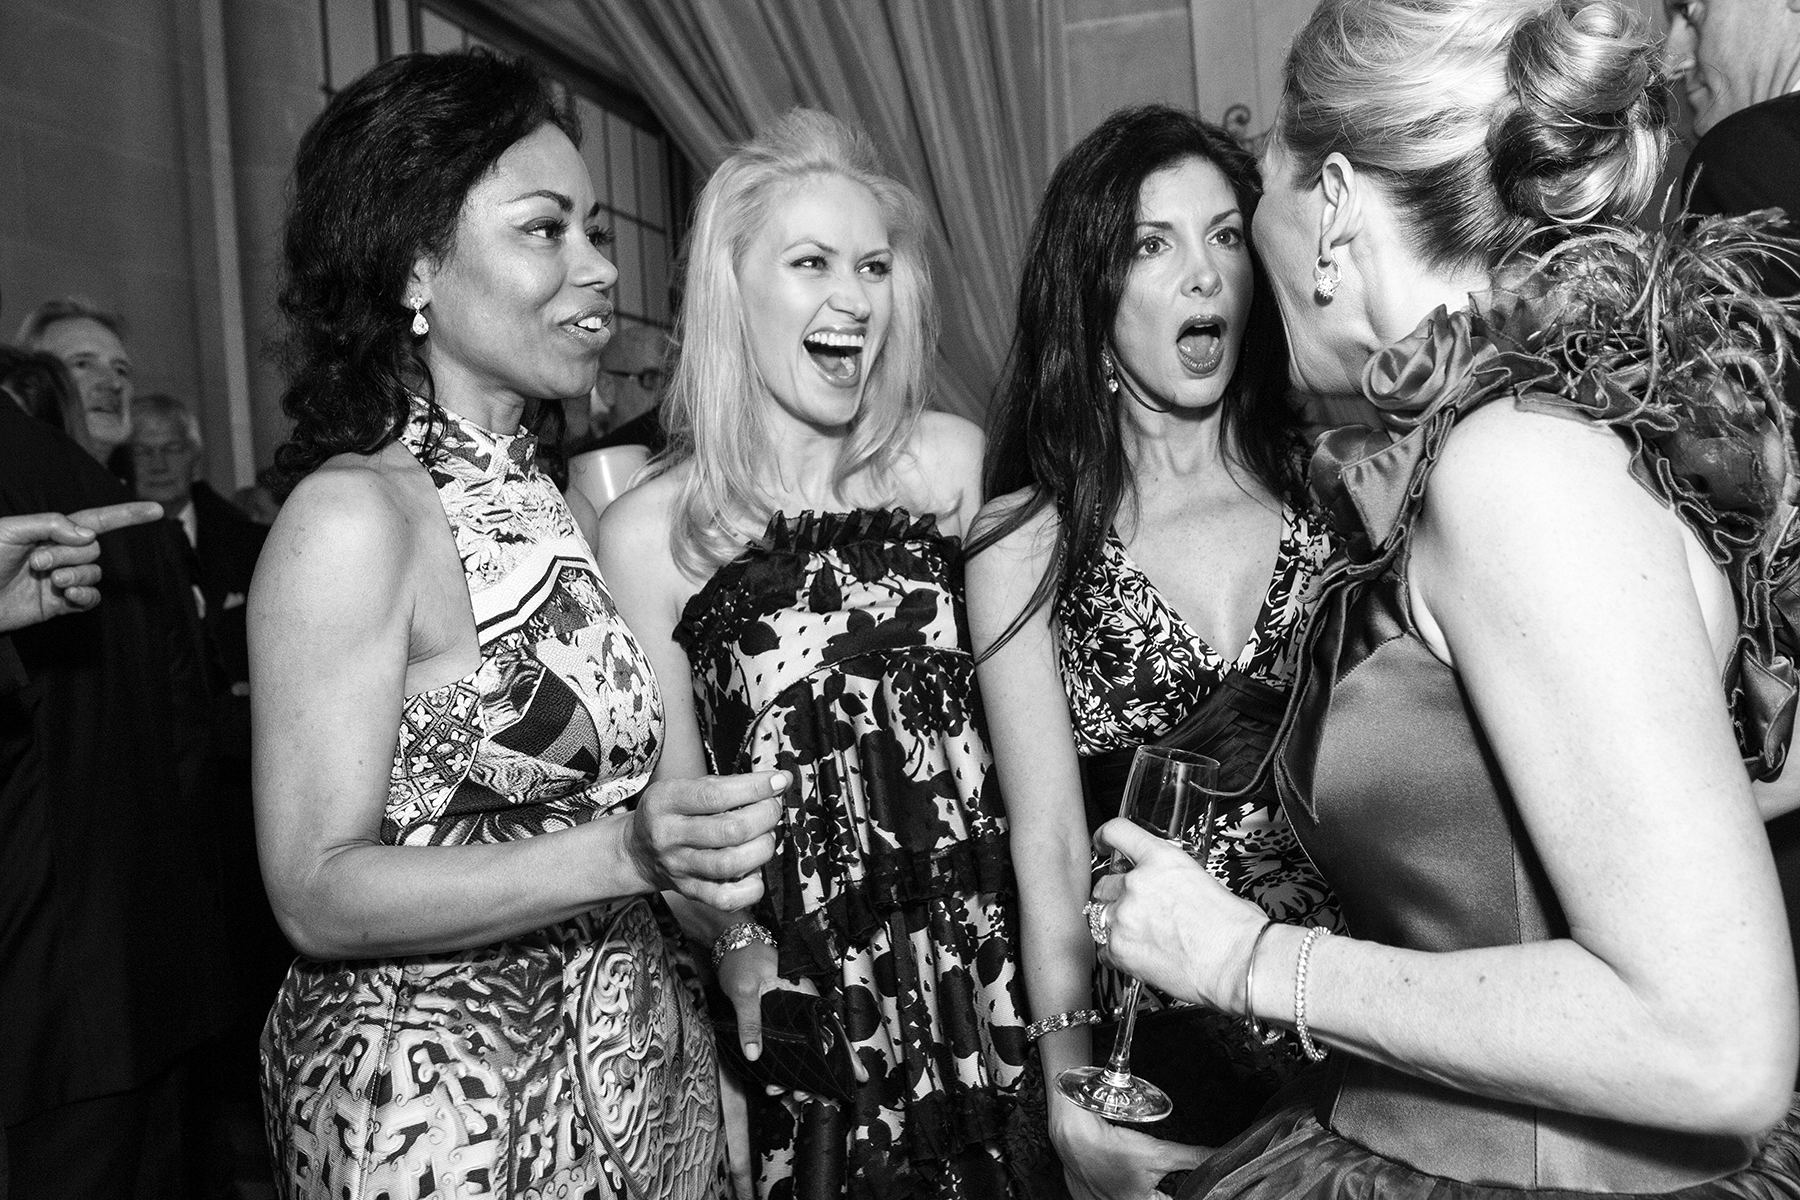 Tanya Powell, Marie Ralph, Aimee West and Marie Hurabiell (left to right) chat with one another during the cocktail hour while attending the San Francisco Ballet Opening Night Gala at City Hall in San Francisco, Calif., on Thursday, January 19, 2012. Many patrons participate in numerous social events with one another throughout the year and some become close friends.This photograph is of a candid moment and was not directed in any way.